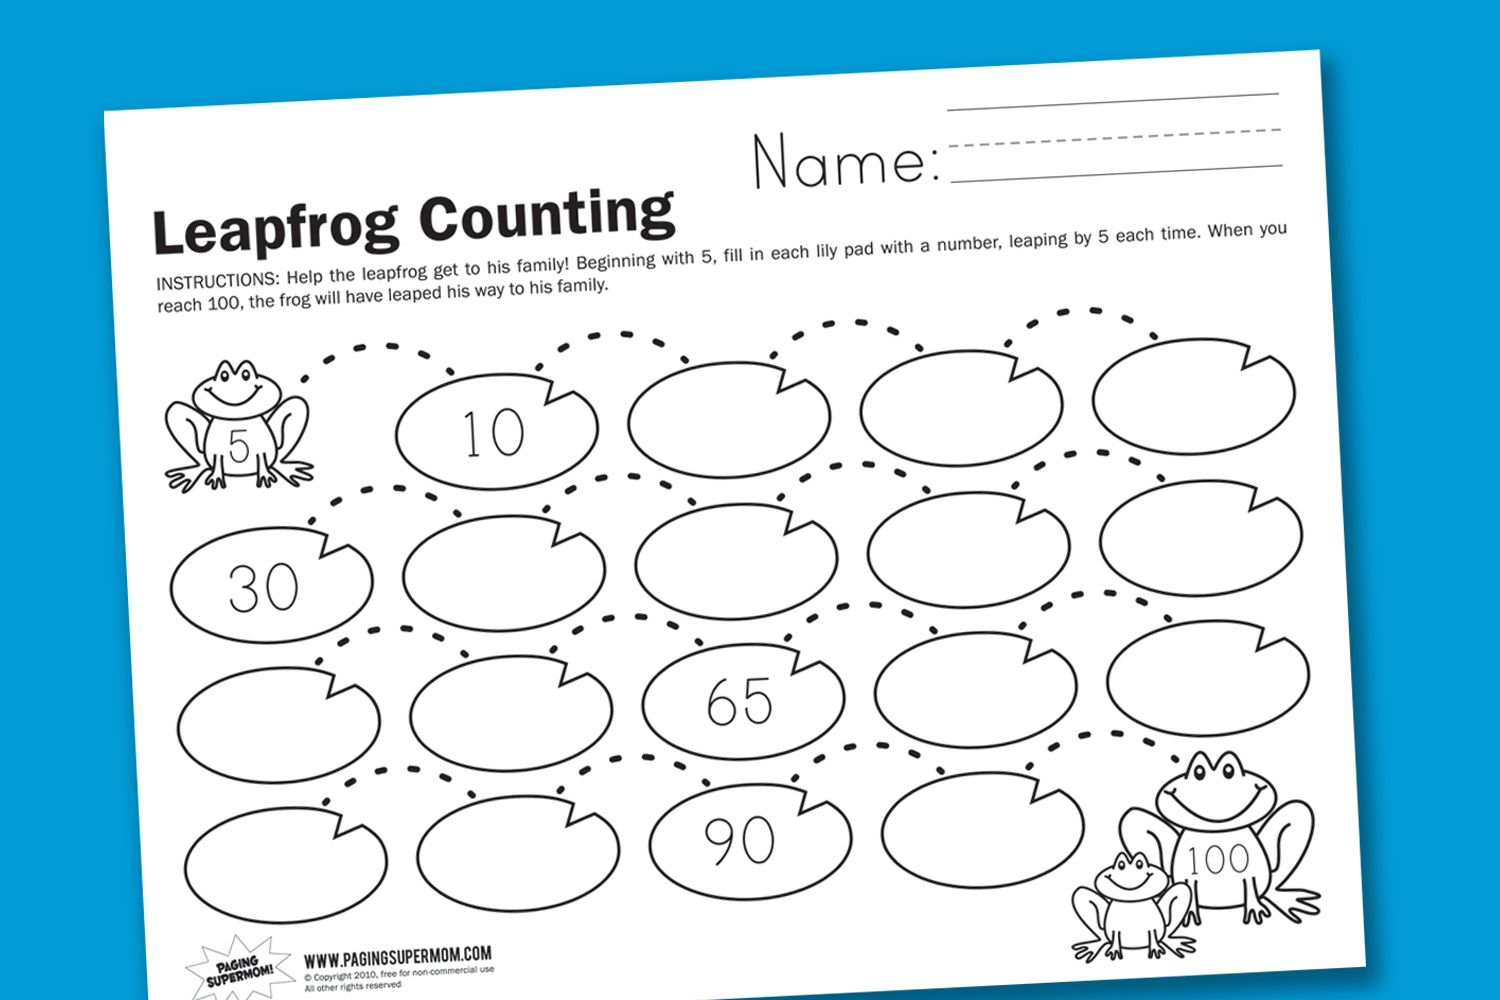 Leapfrog Counting